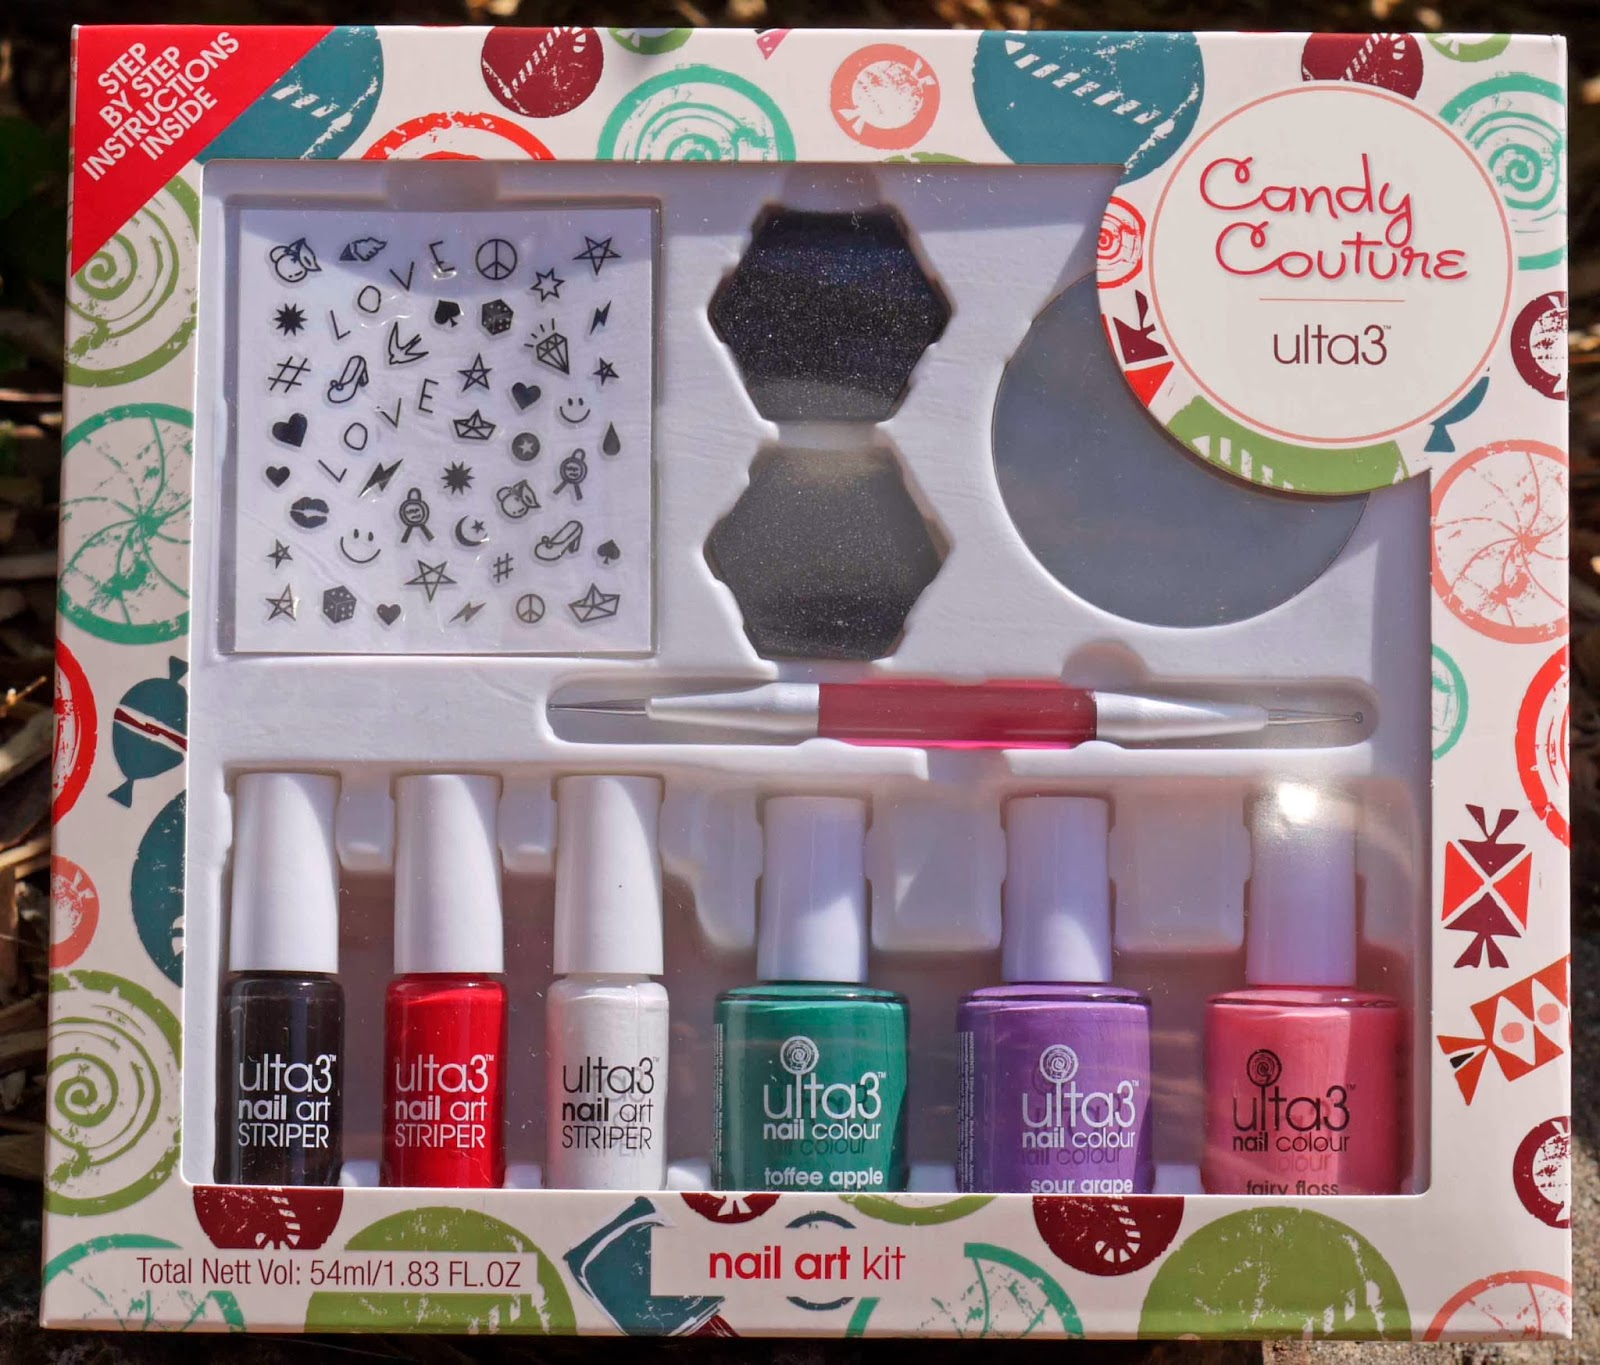 For A Little While Now Ulta3 Have Been Bringing Out Some Diffe Gift Packs To Purchase I Was Lucky Enough Be Sent The Nail Art Candy Couture Kit